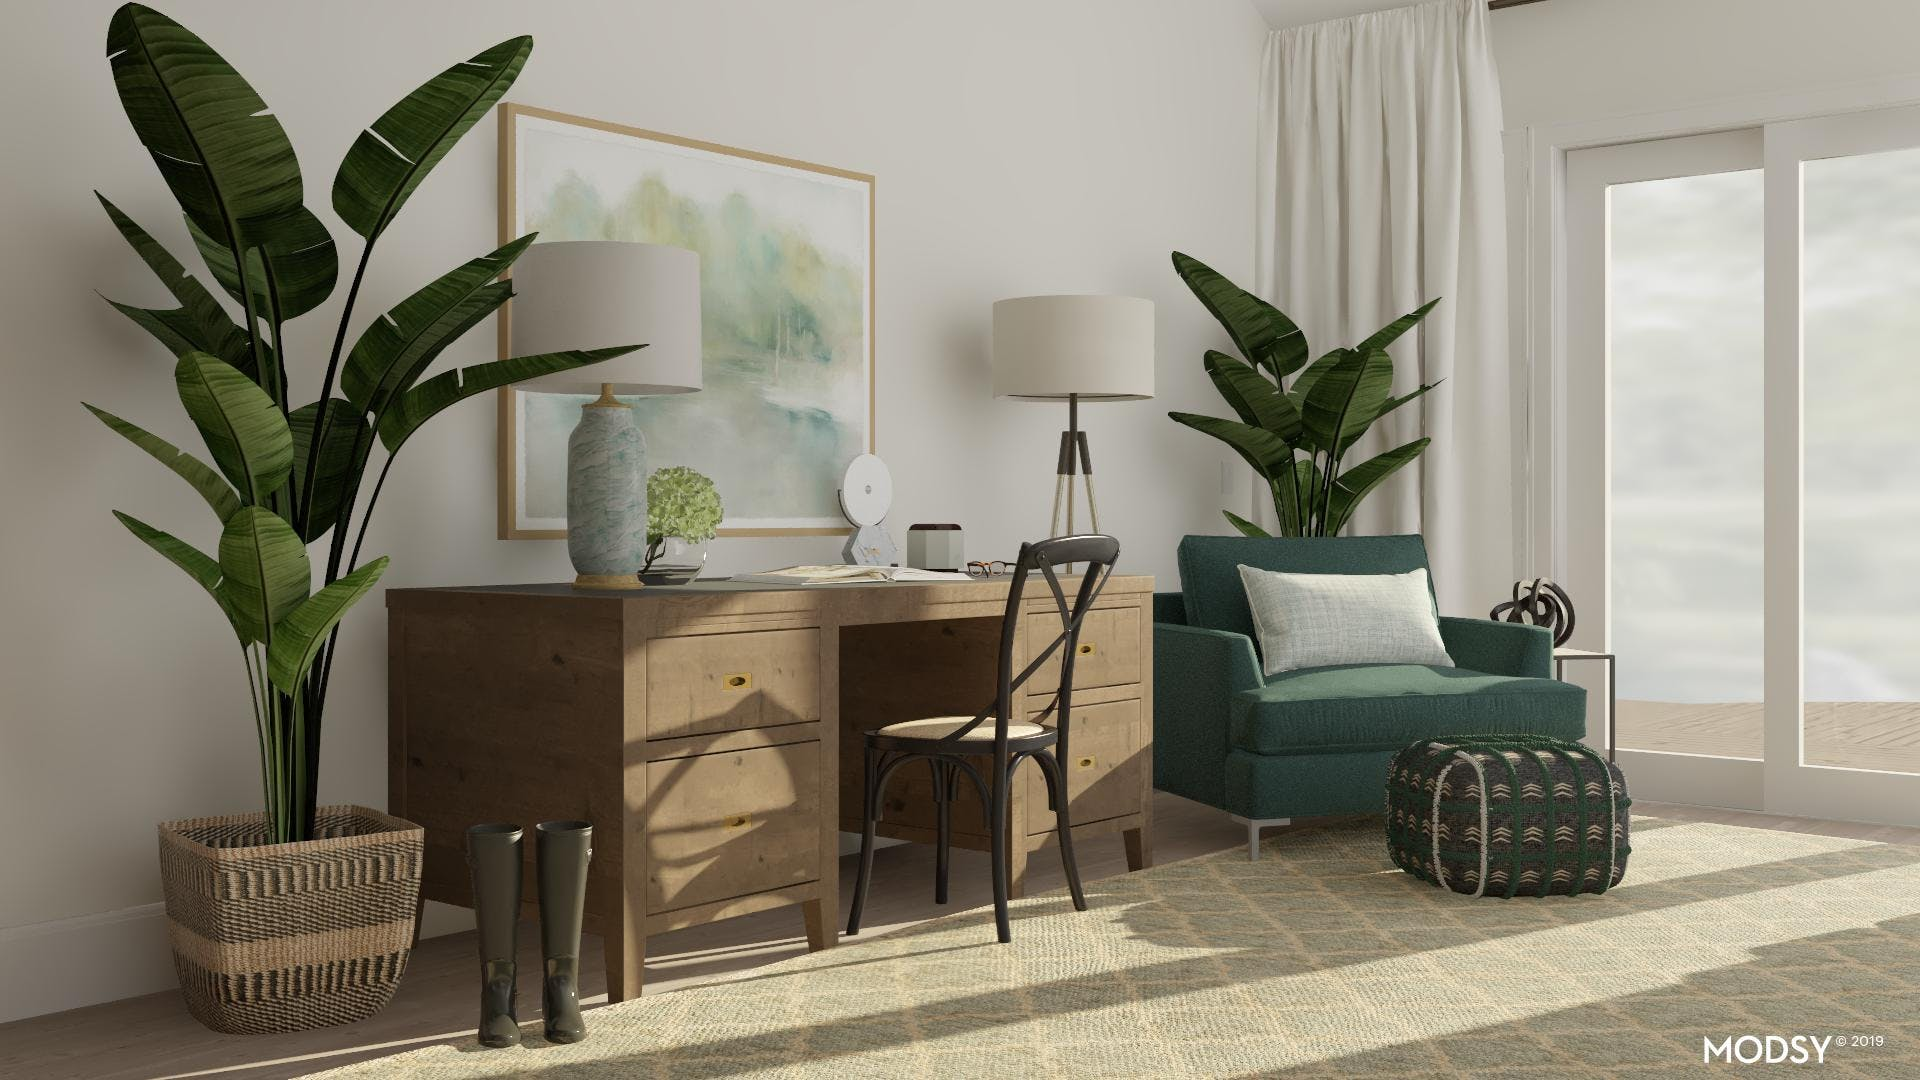 Home office Goes Transition In Green Tones